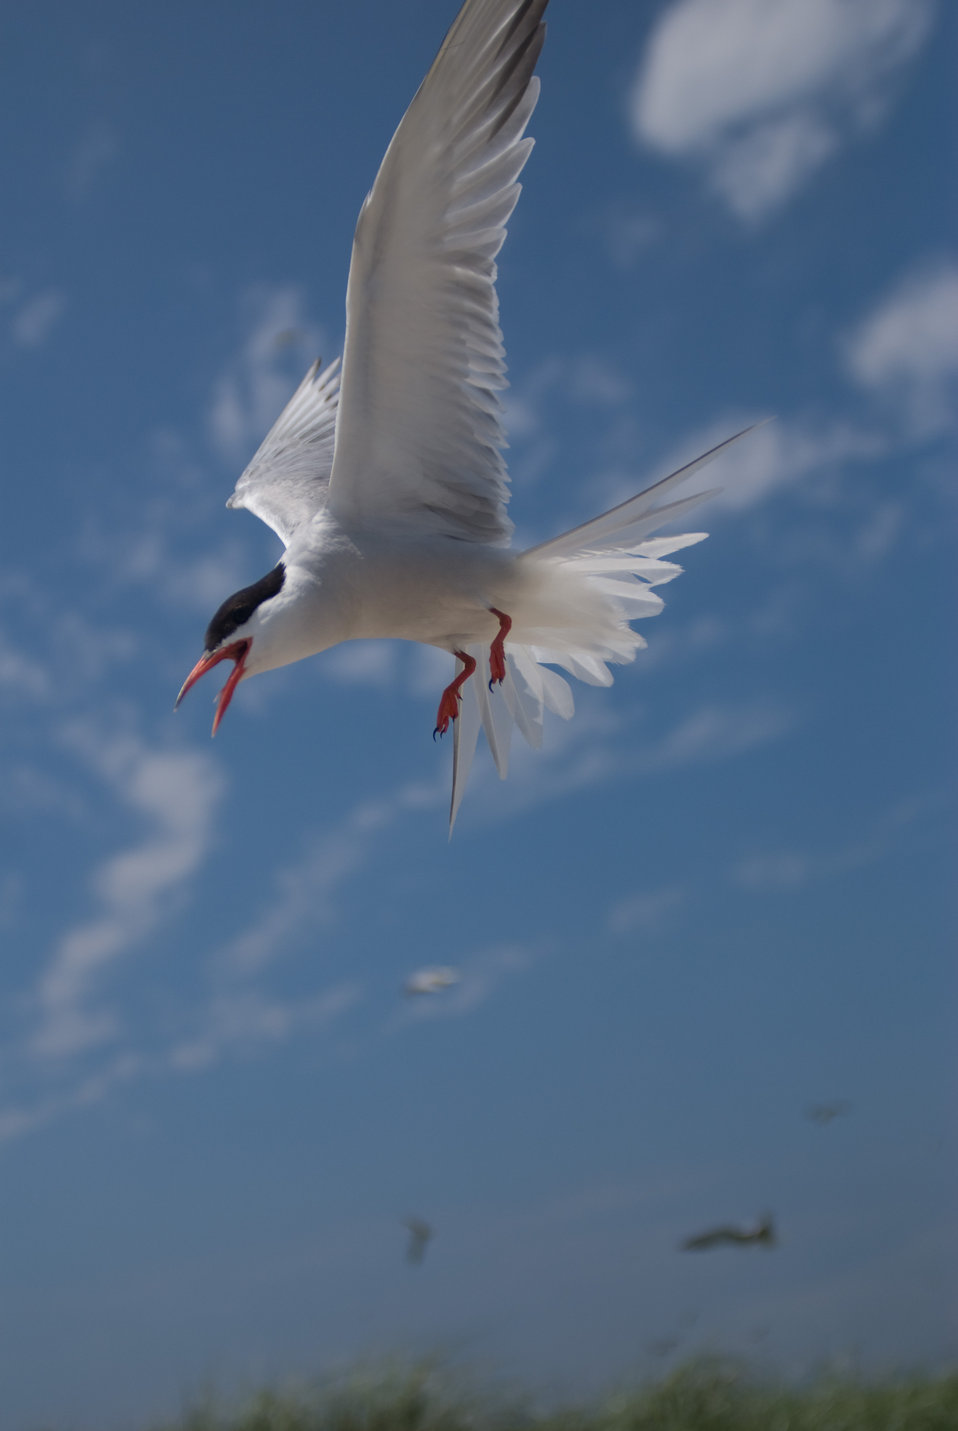 Photo of the Week - Tern at Monomoy National Wildlife Refuge, MA